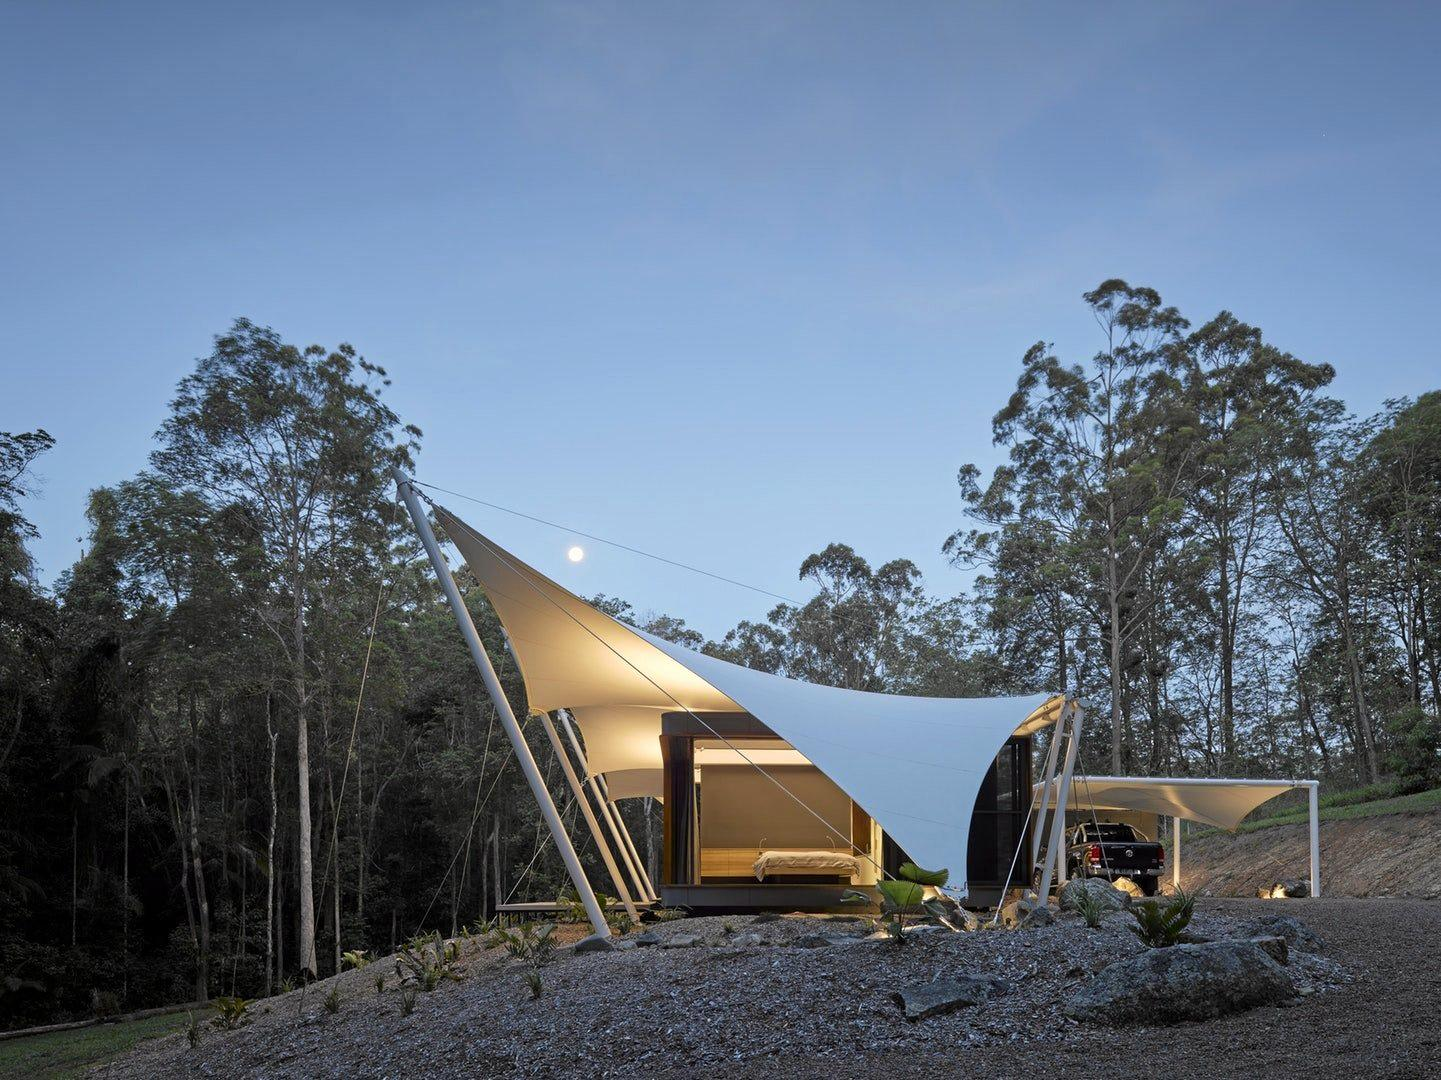 Tent House, Noosa hinterland, by Sparks Architects.